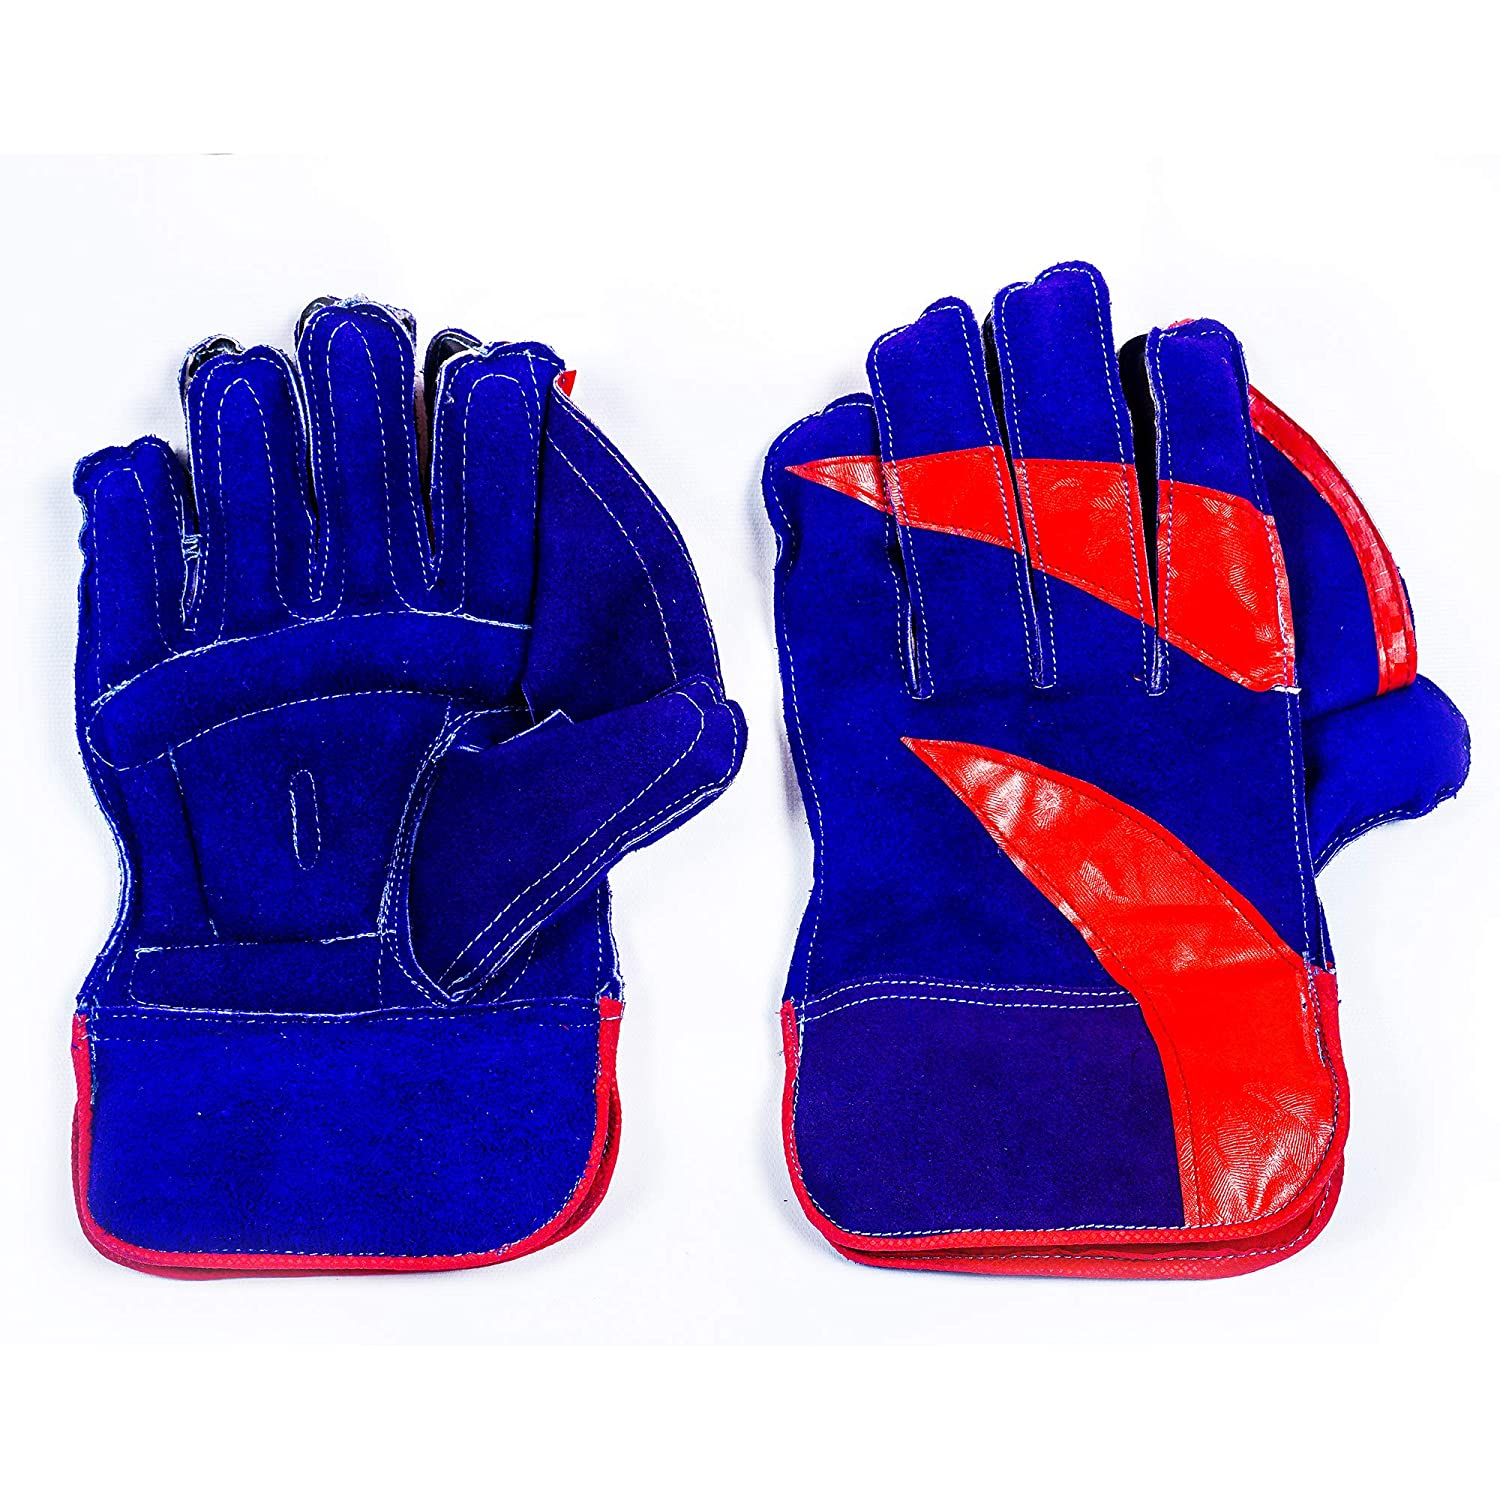 Wicket Keeping Gloves - Full Sabar